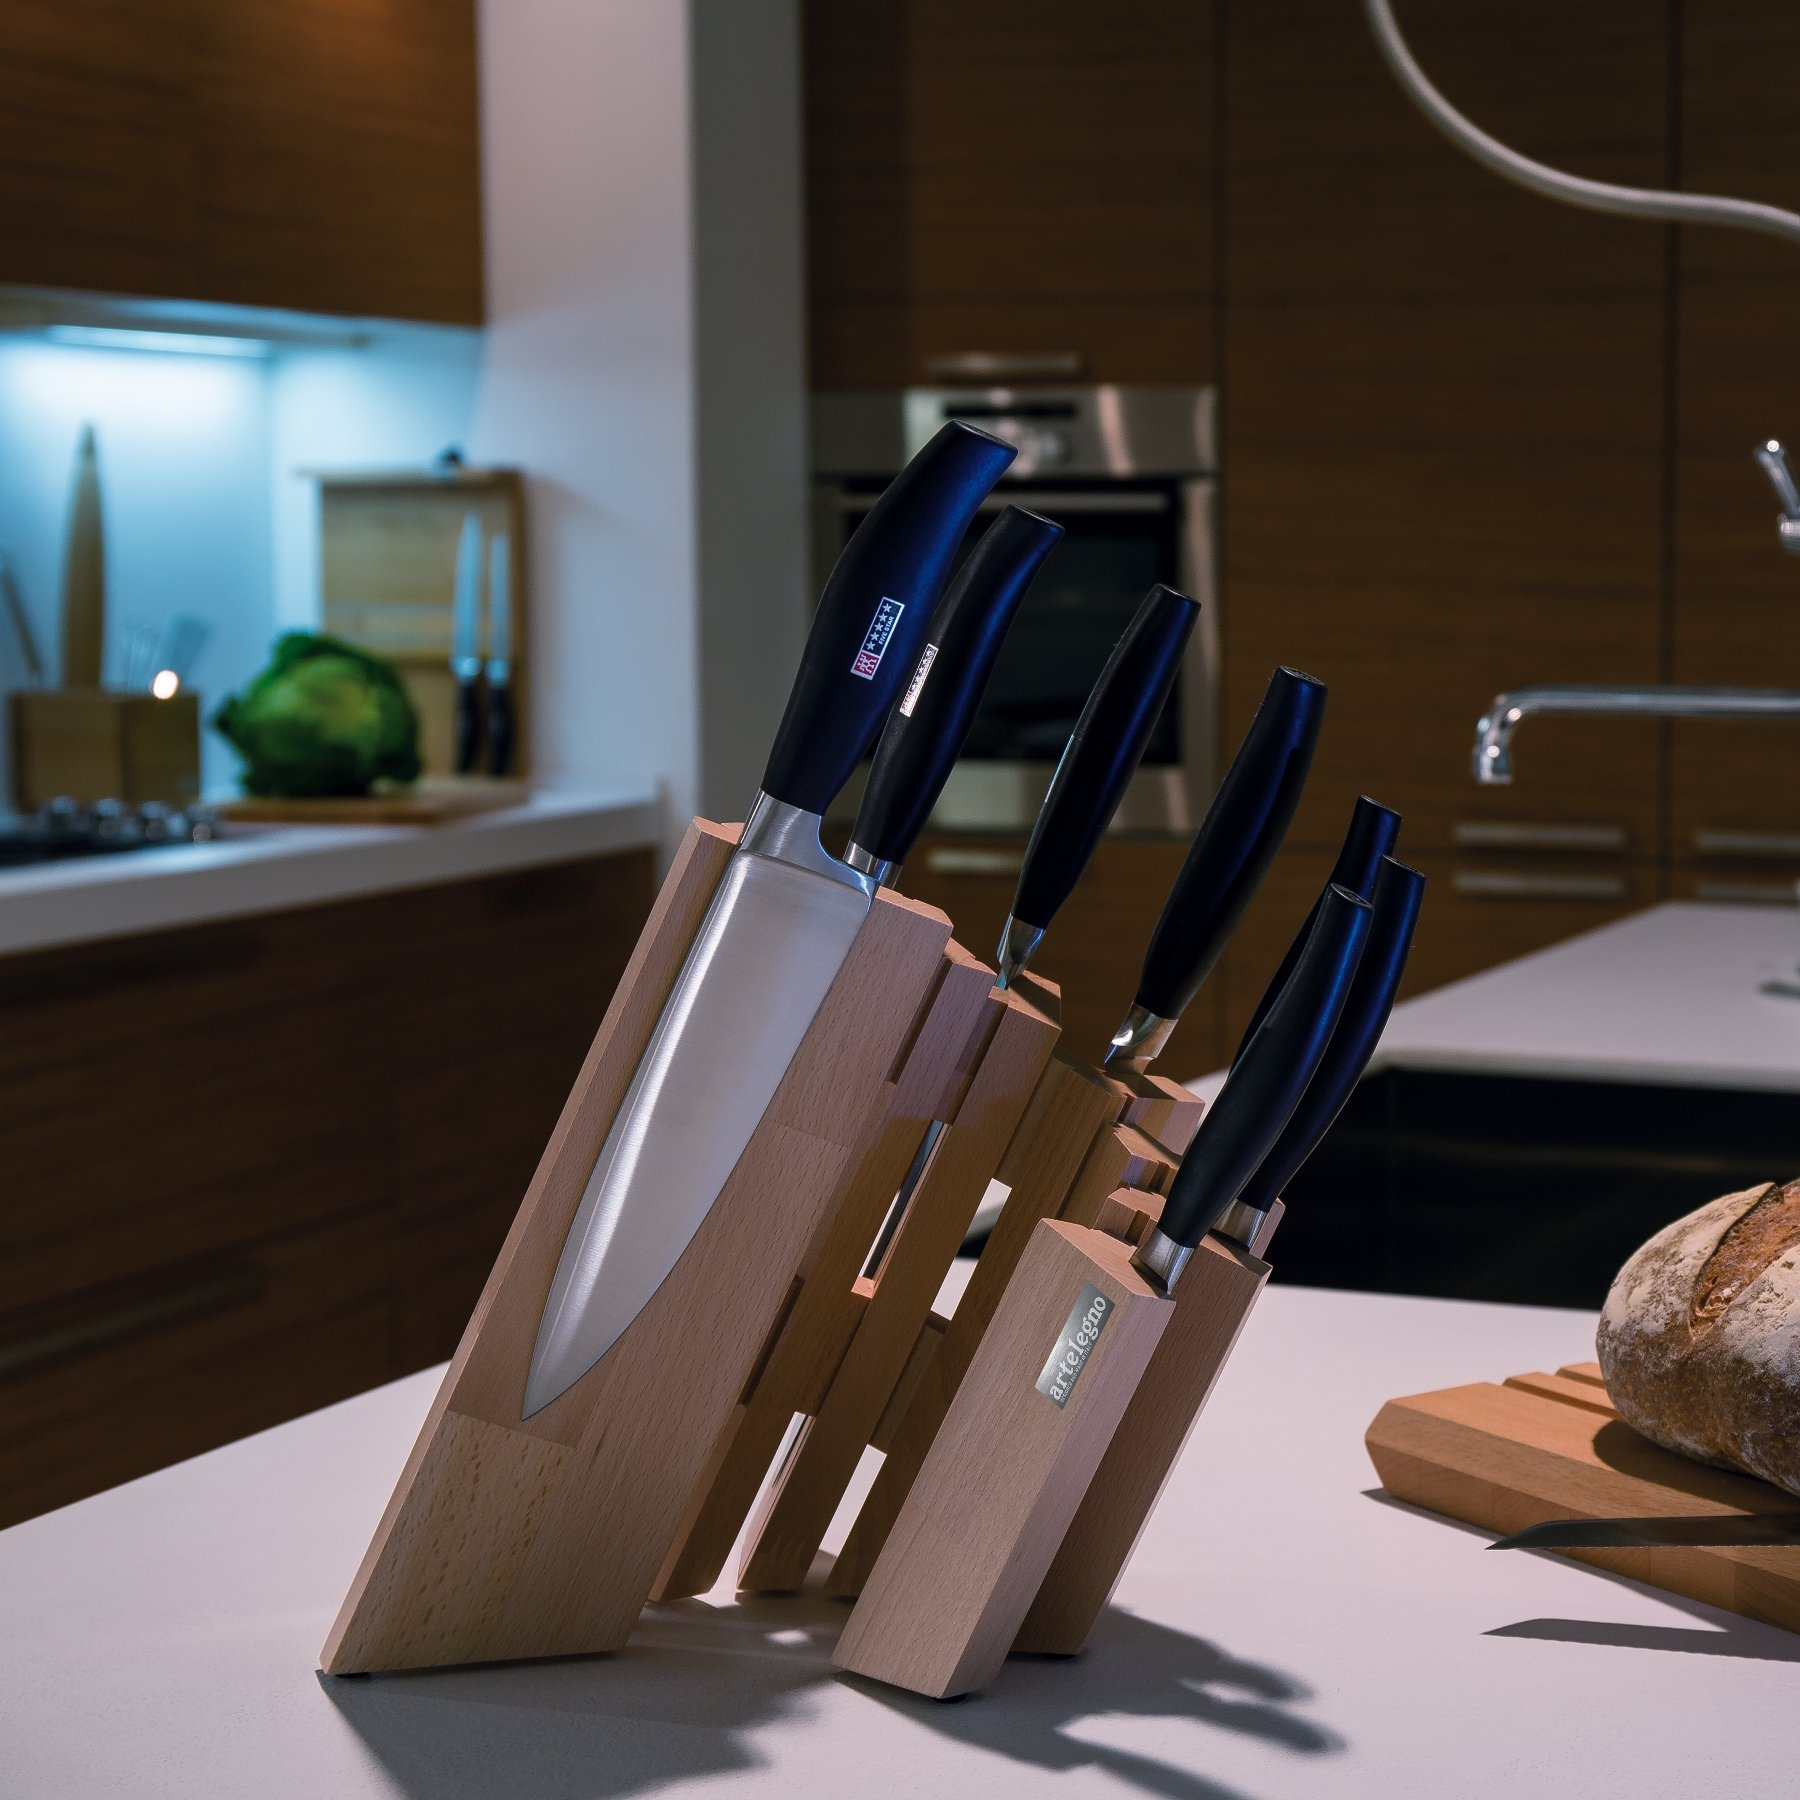 Artelegno Magnetic Knife Block Solid Beech Wood 8 Panel, Luxurious Italian Pisa Collection by Master Craftsmen Displays High-End Knives Elegantly, Eco-friendly, Natural Finish, Small by Arte Legno (Image #3)